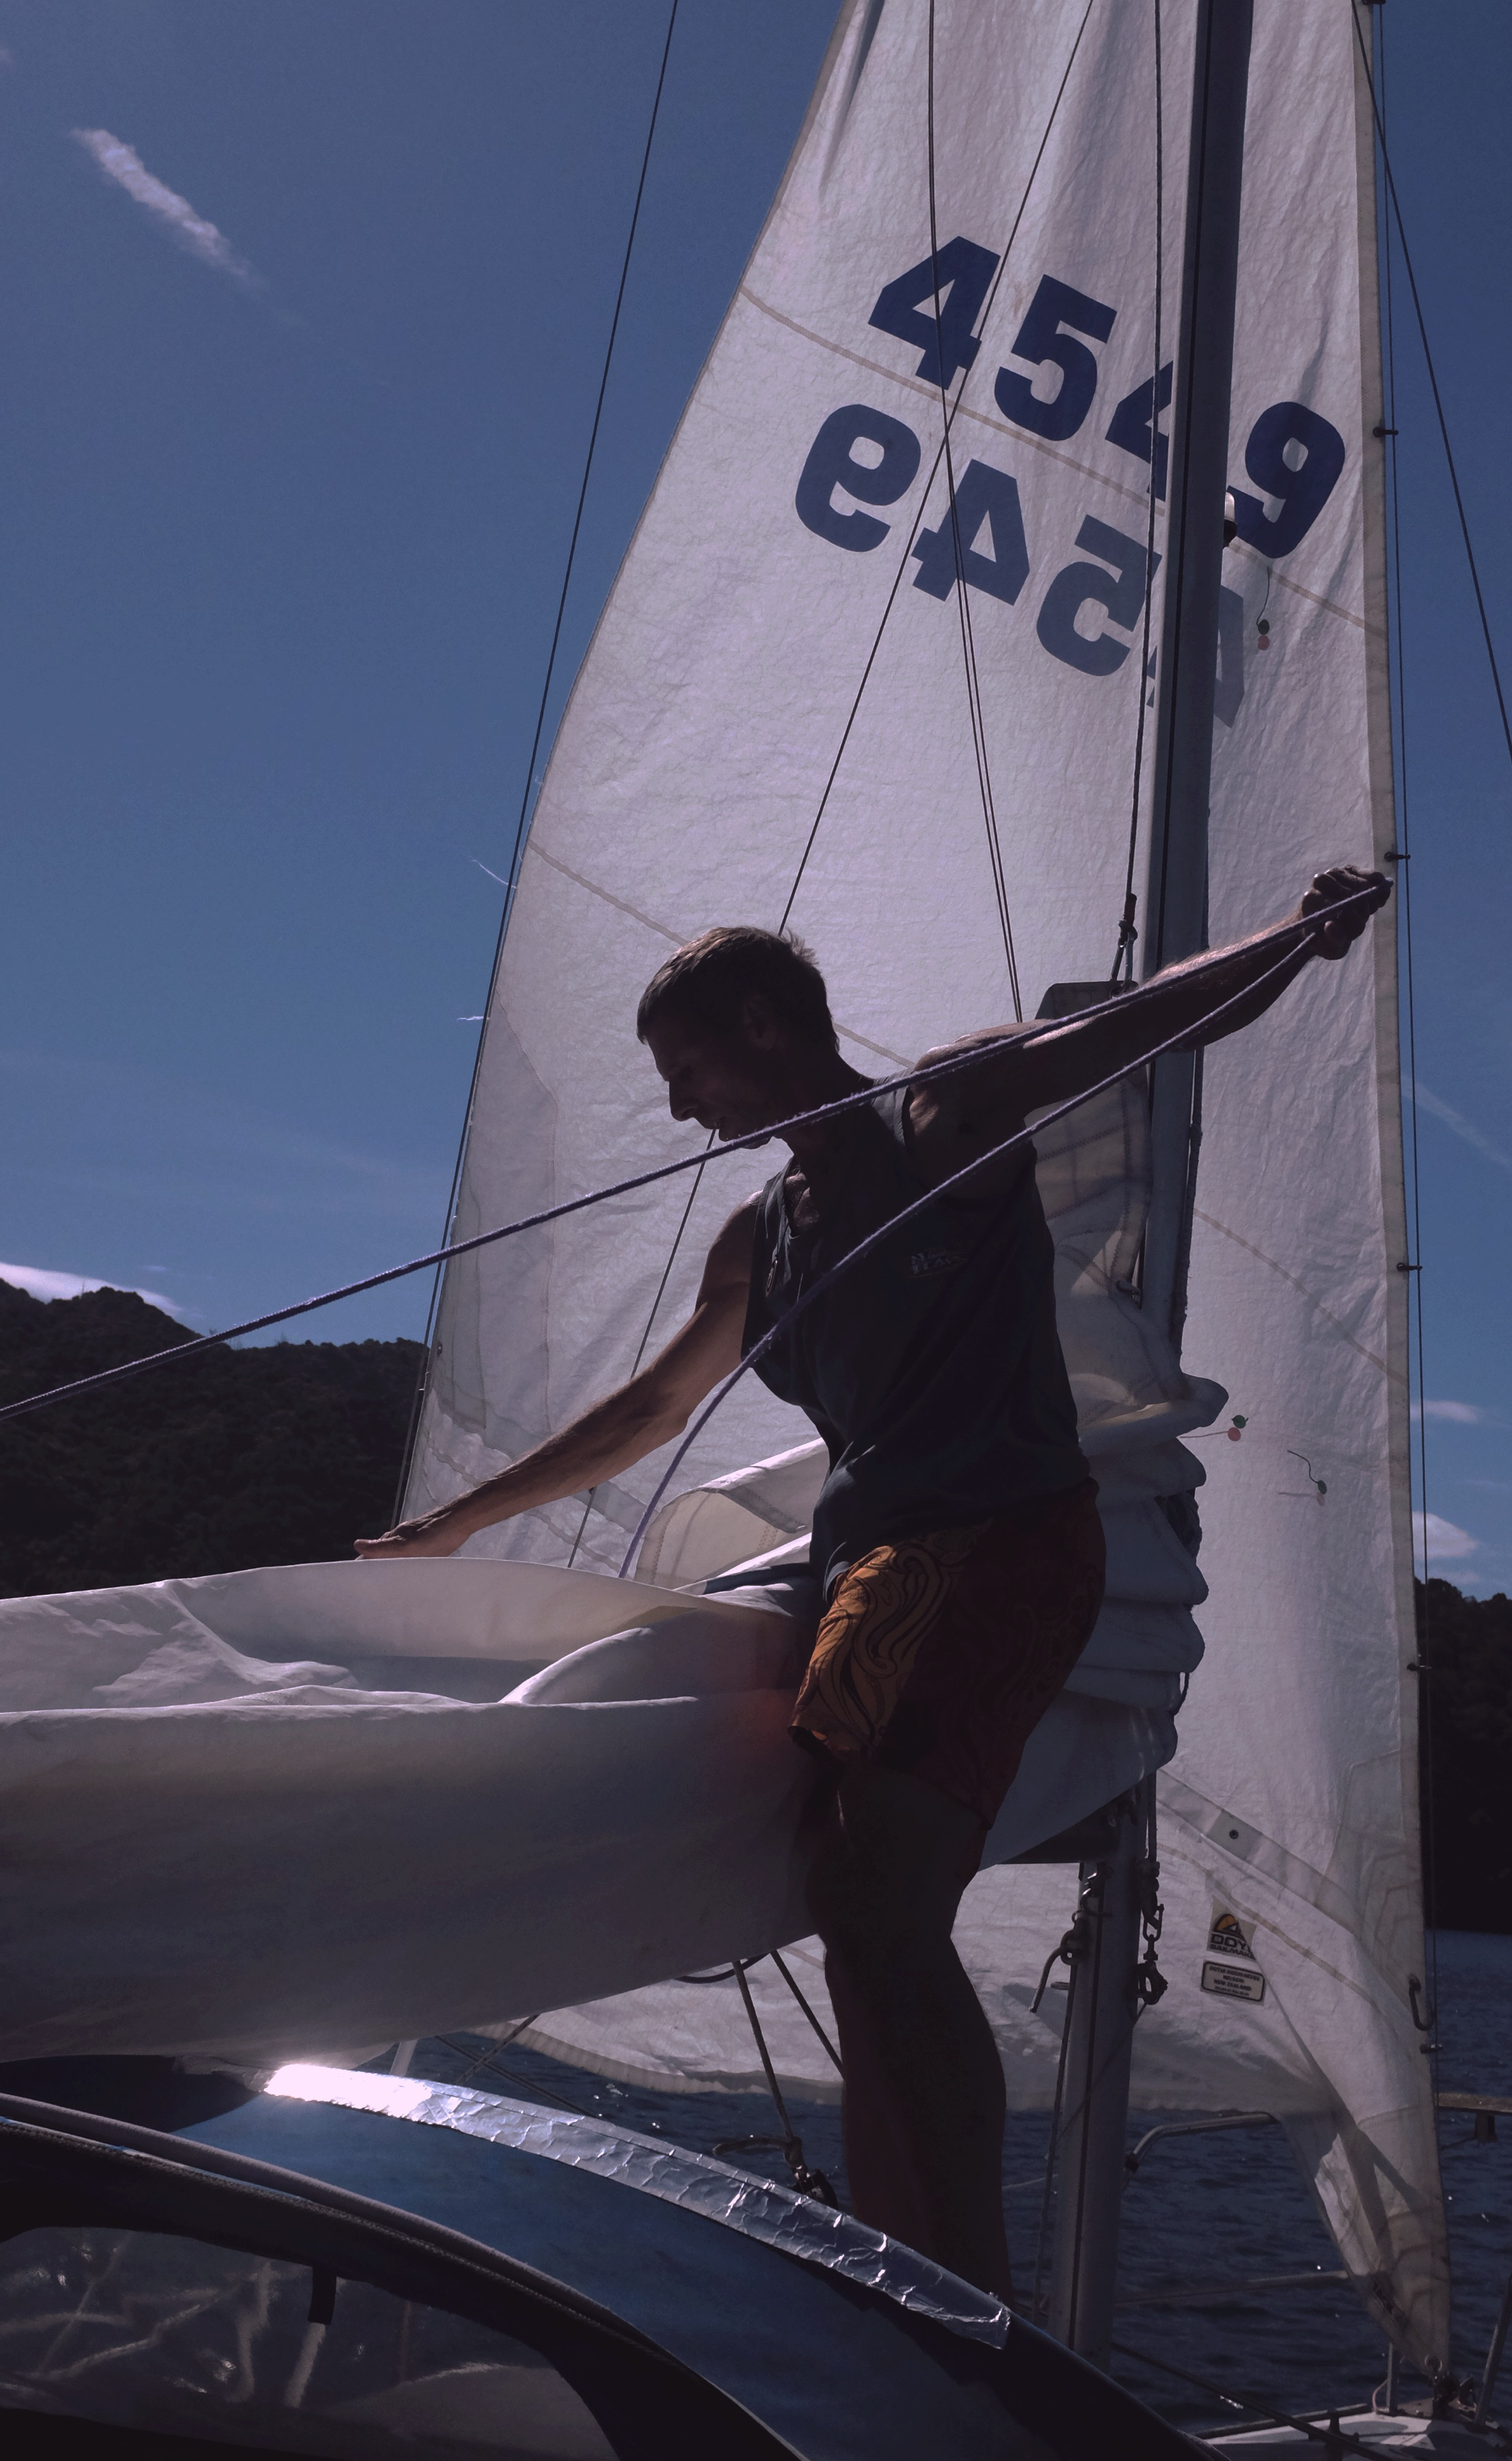 Taking down the sails.